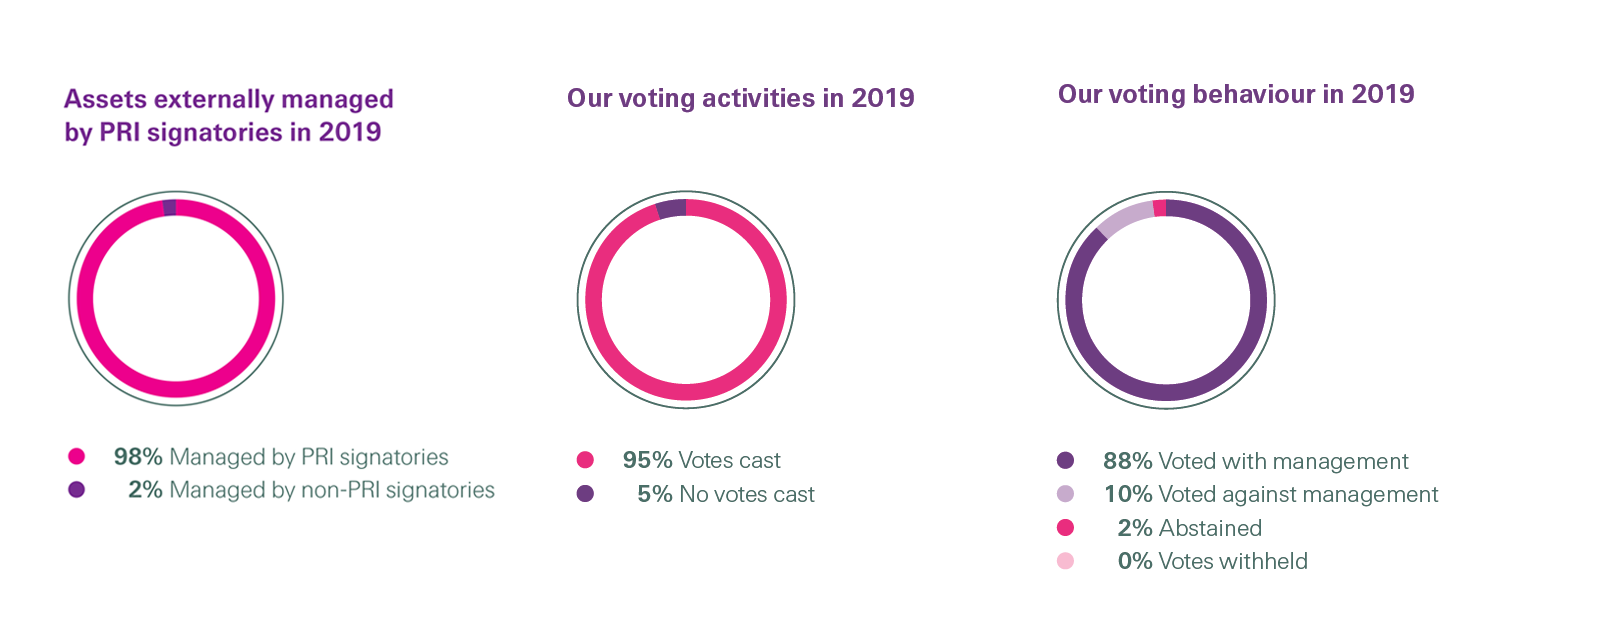 Charts showing Swiss Re Assets externally managed by PRI signatories in 2019 and Our voting activities and behaviour in 2019